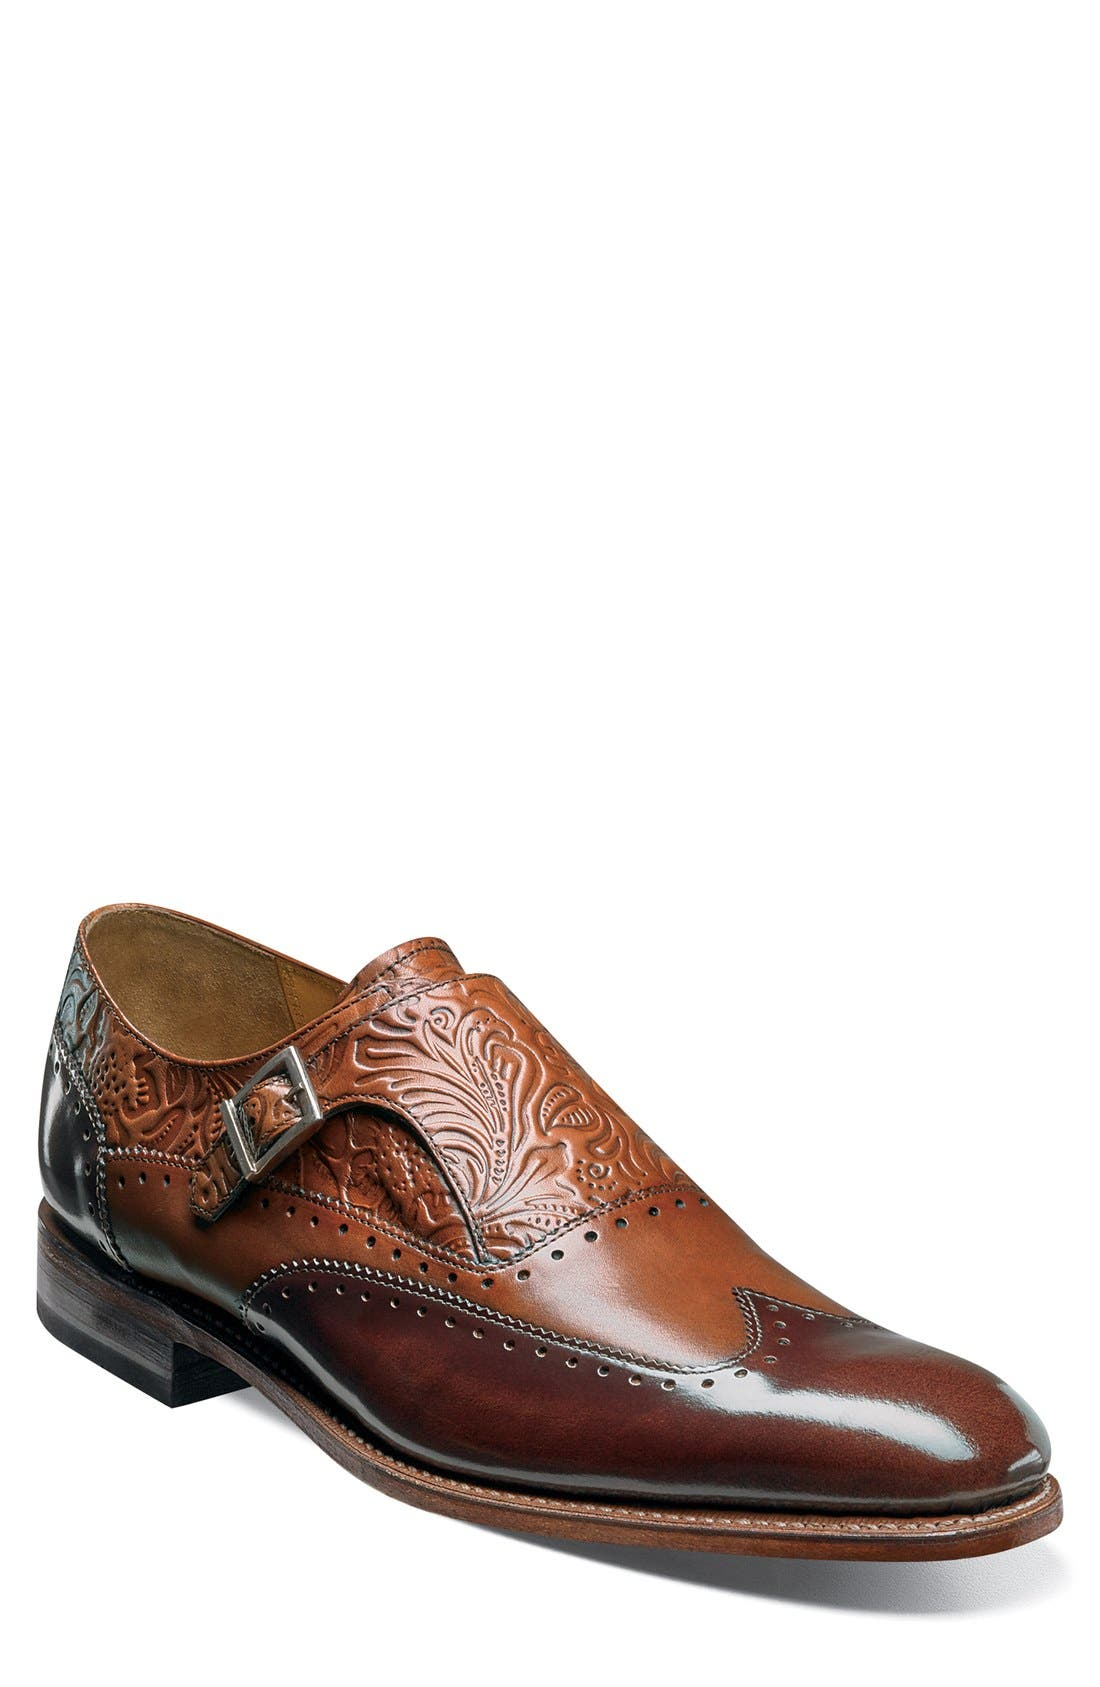 Alternate Image 1 Selected - Stacy Adams Madison II Monk Strap Shoe (Men)